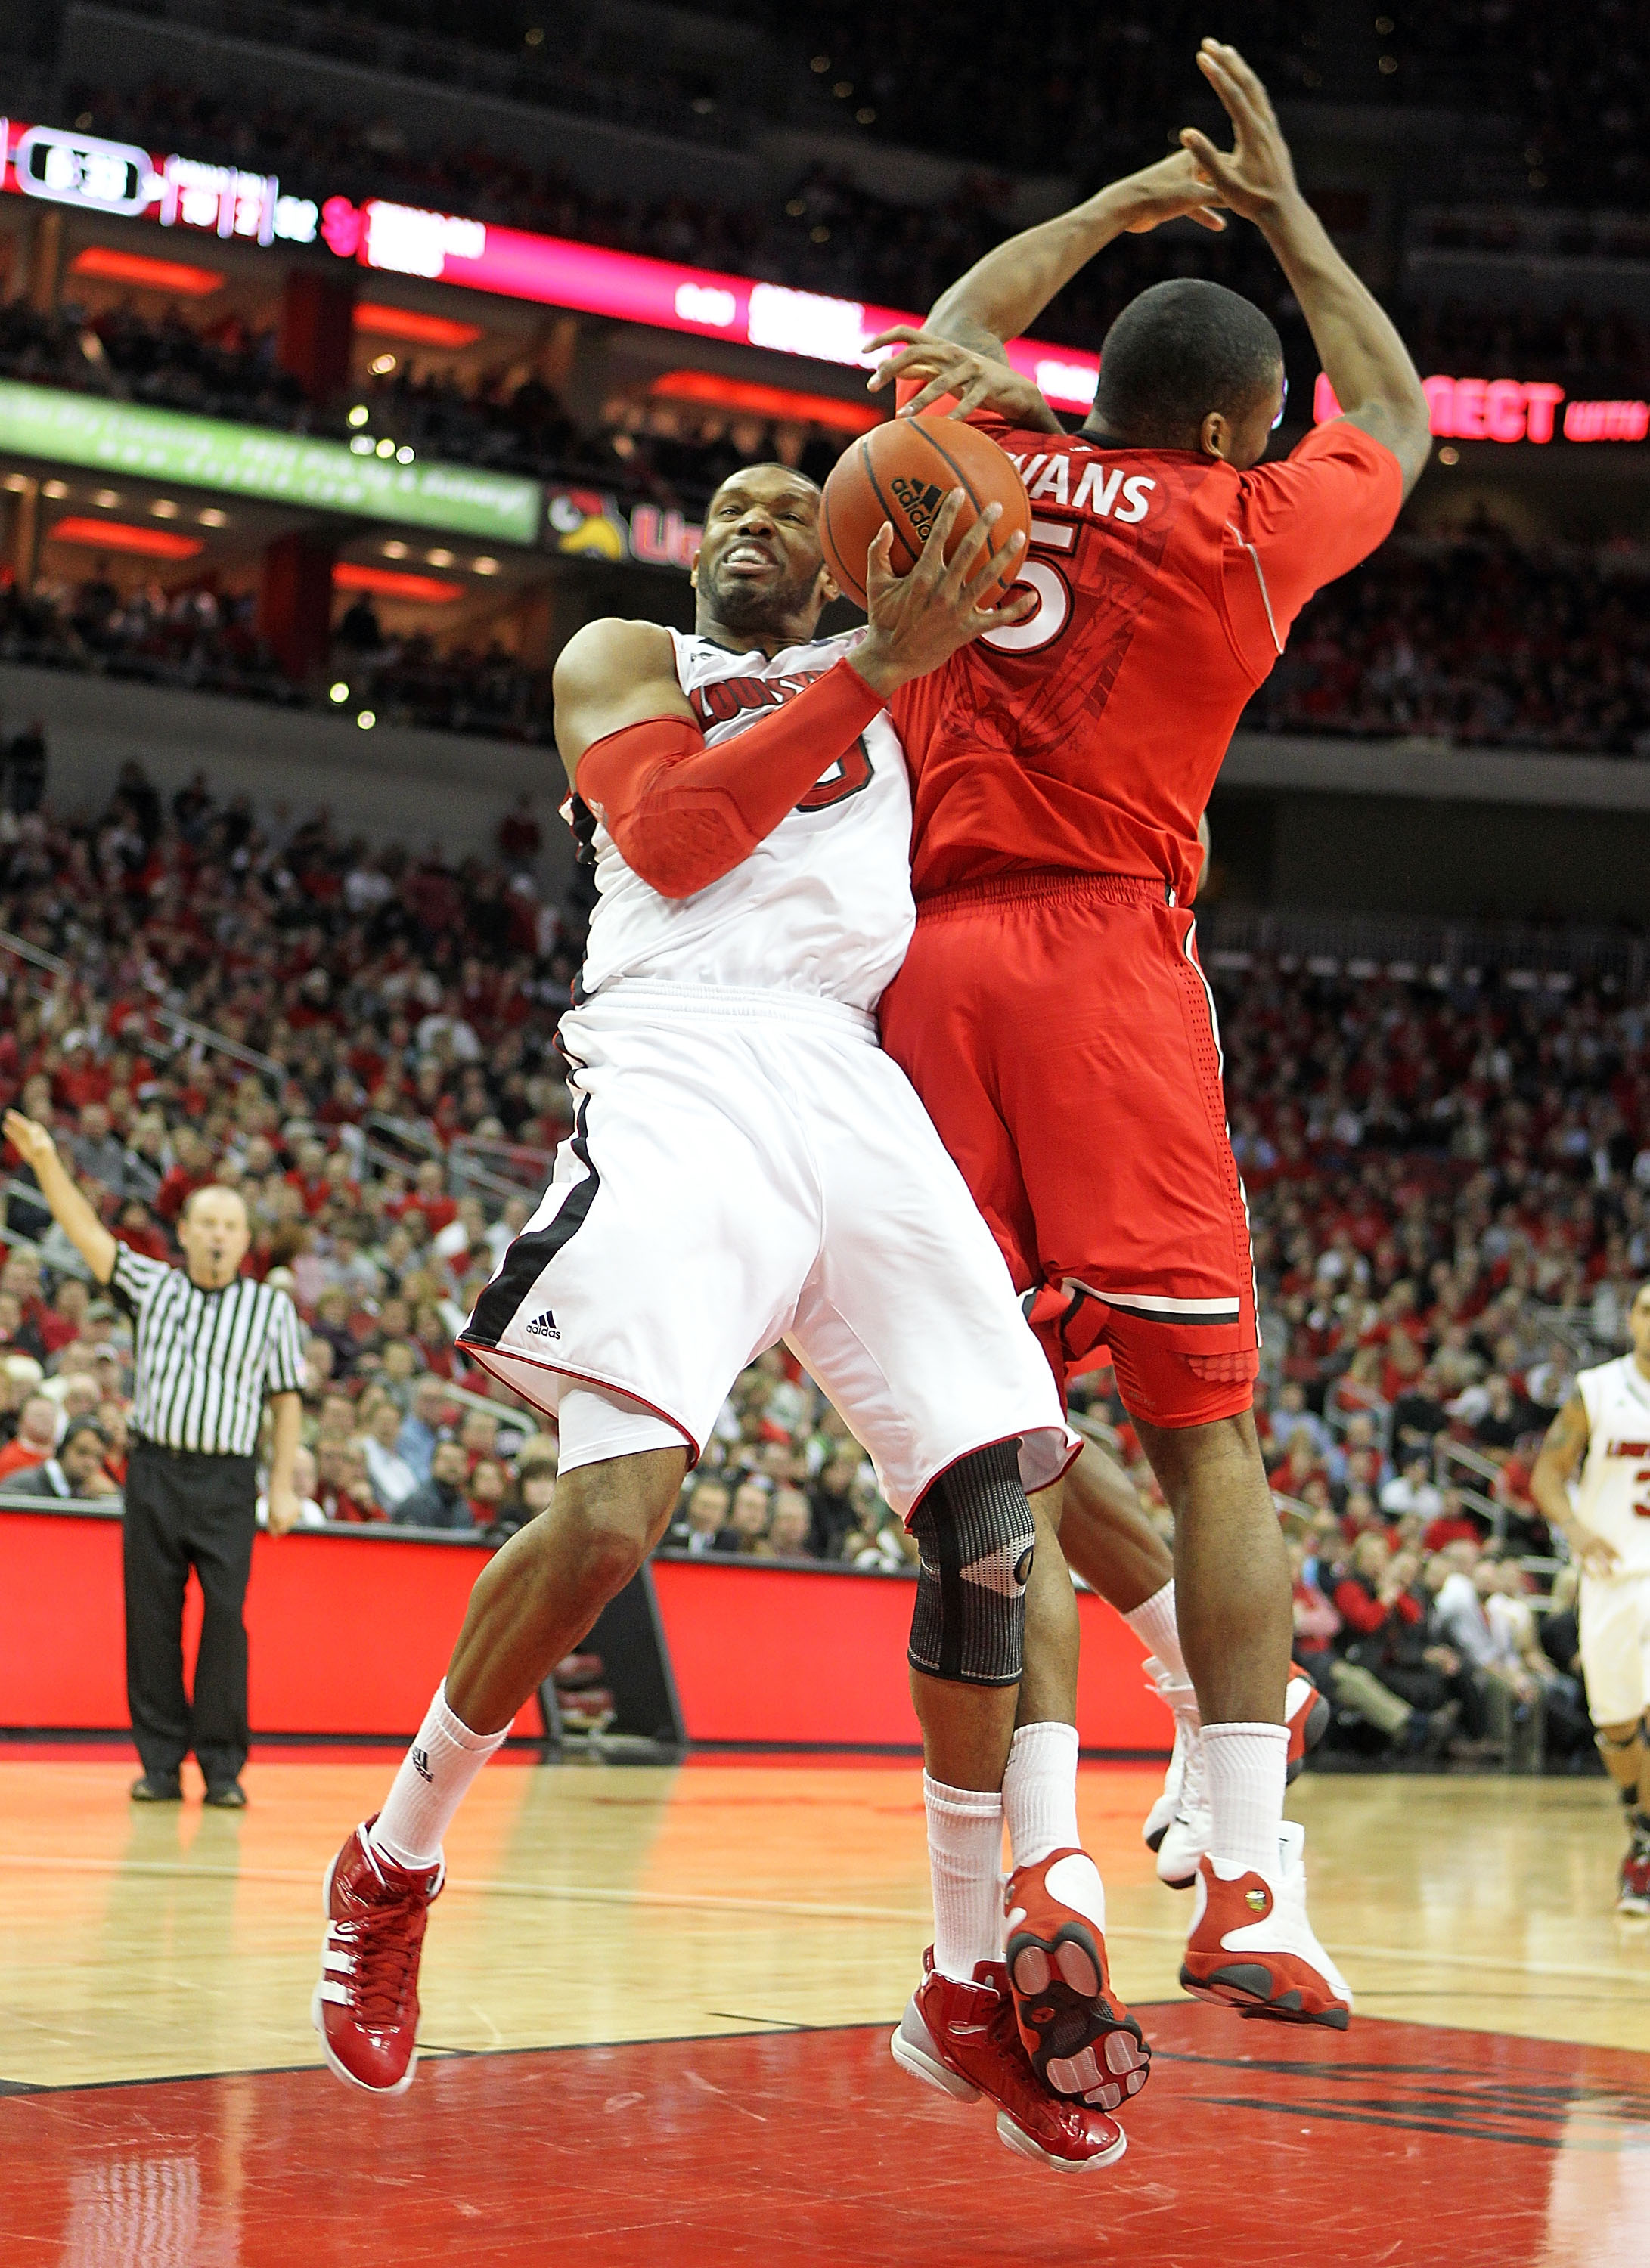 LOUISVILLE, KY - JANUARY 19: George Goode #0 of the Louisville Cardinals and Sean Evans #5 of the St. John's Red Storm battle for a rebound during the Big East Conference game at the KFC Yum! Center on January 19, 2011 in Louisville, Kentucky.  Louisville